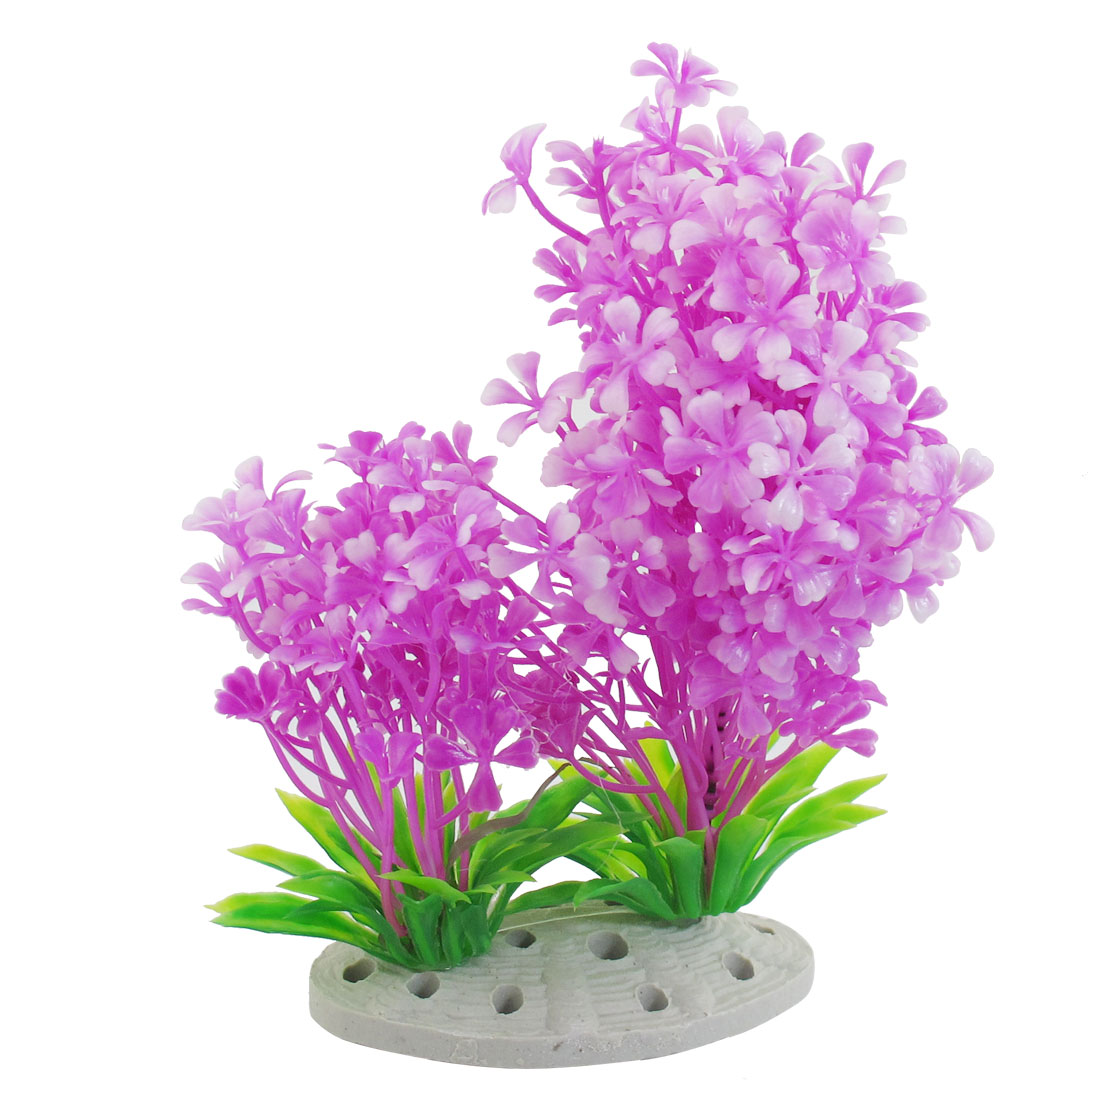 19cm Height Landscaping Plastic Purple Plants Aquarium Aquascaping Tank Decor